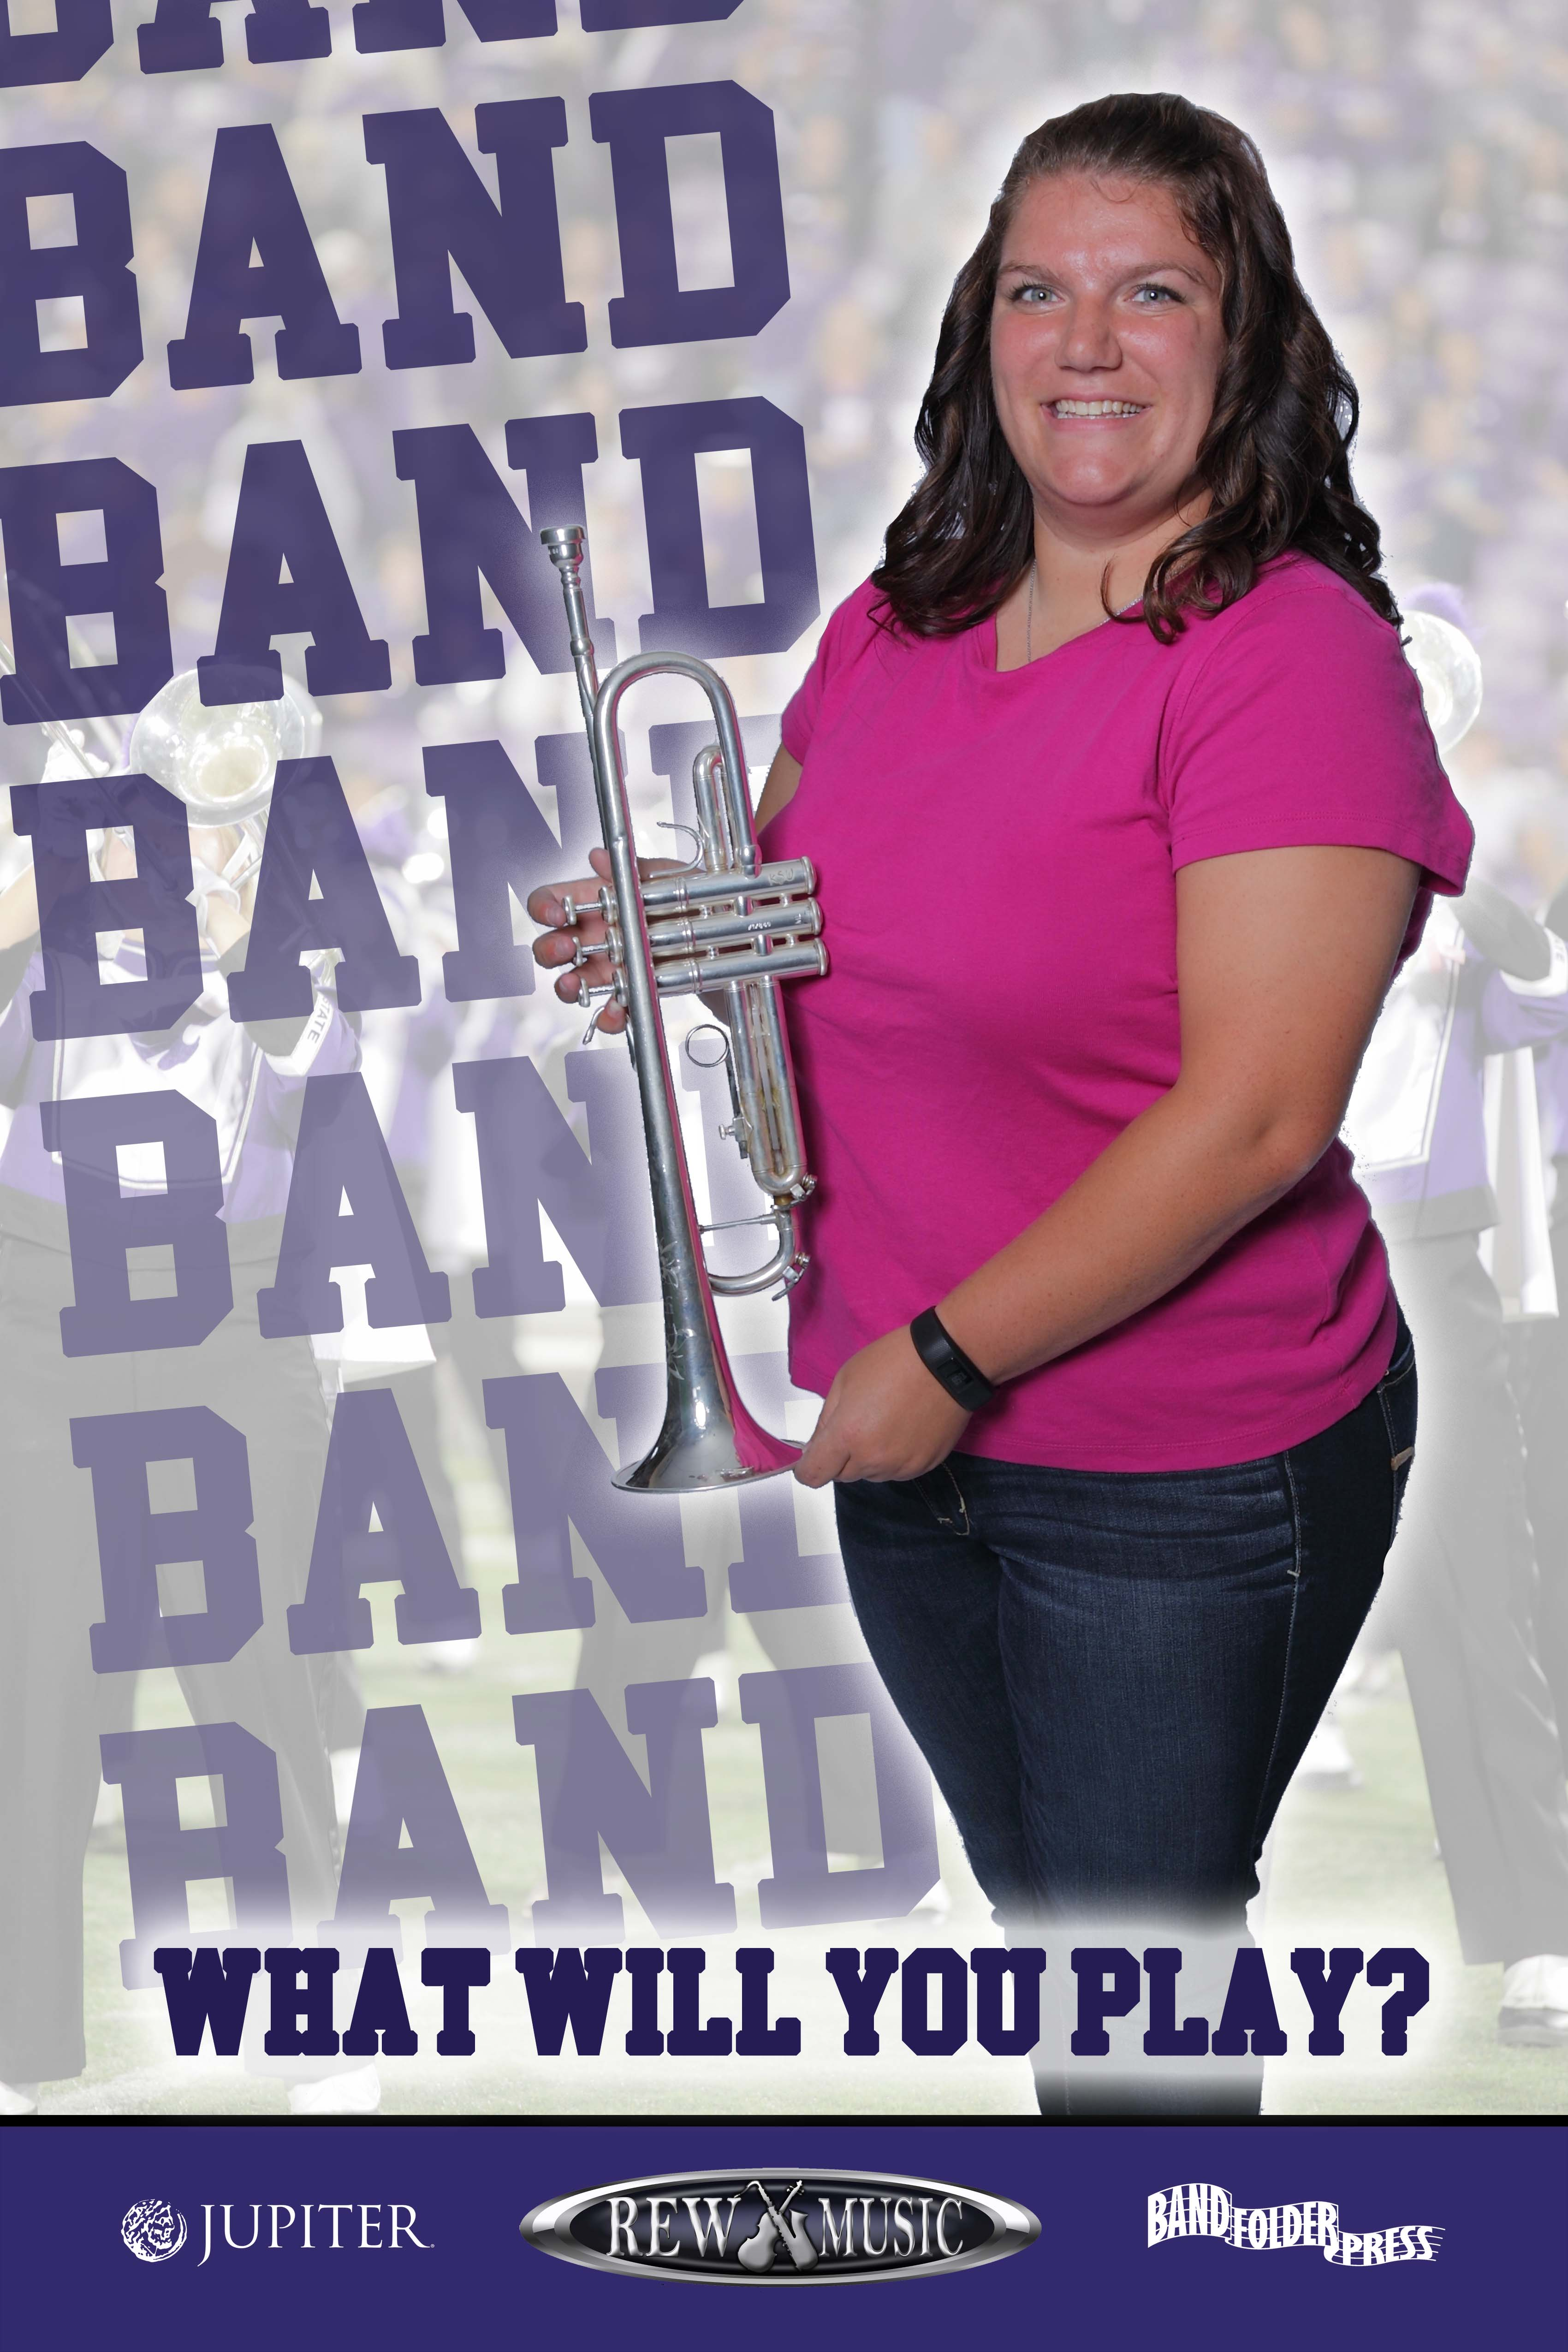 Join the School Band Trumpet player